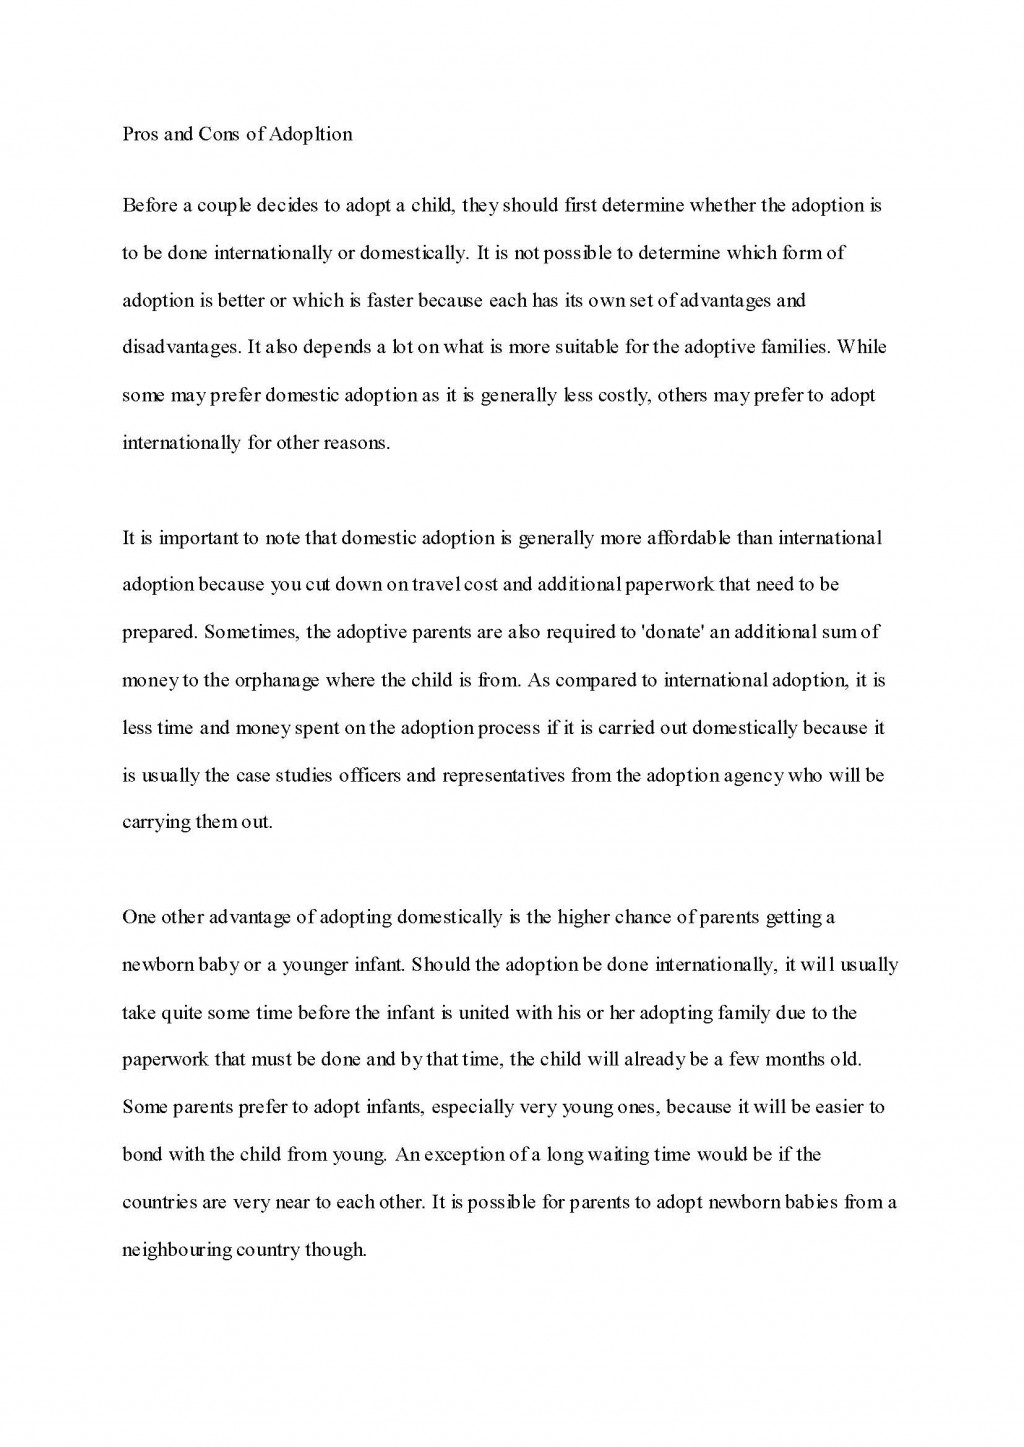 013 Process Essay Topics Adoption Sample Marvelous For College Examples Middle School Funny Large